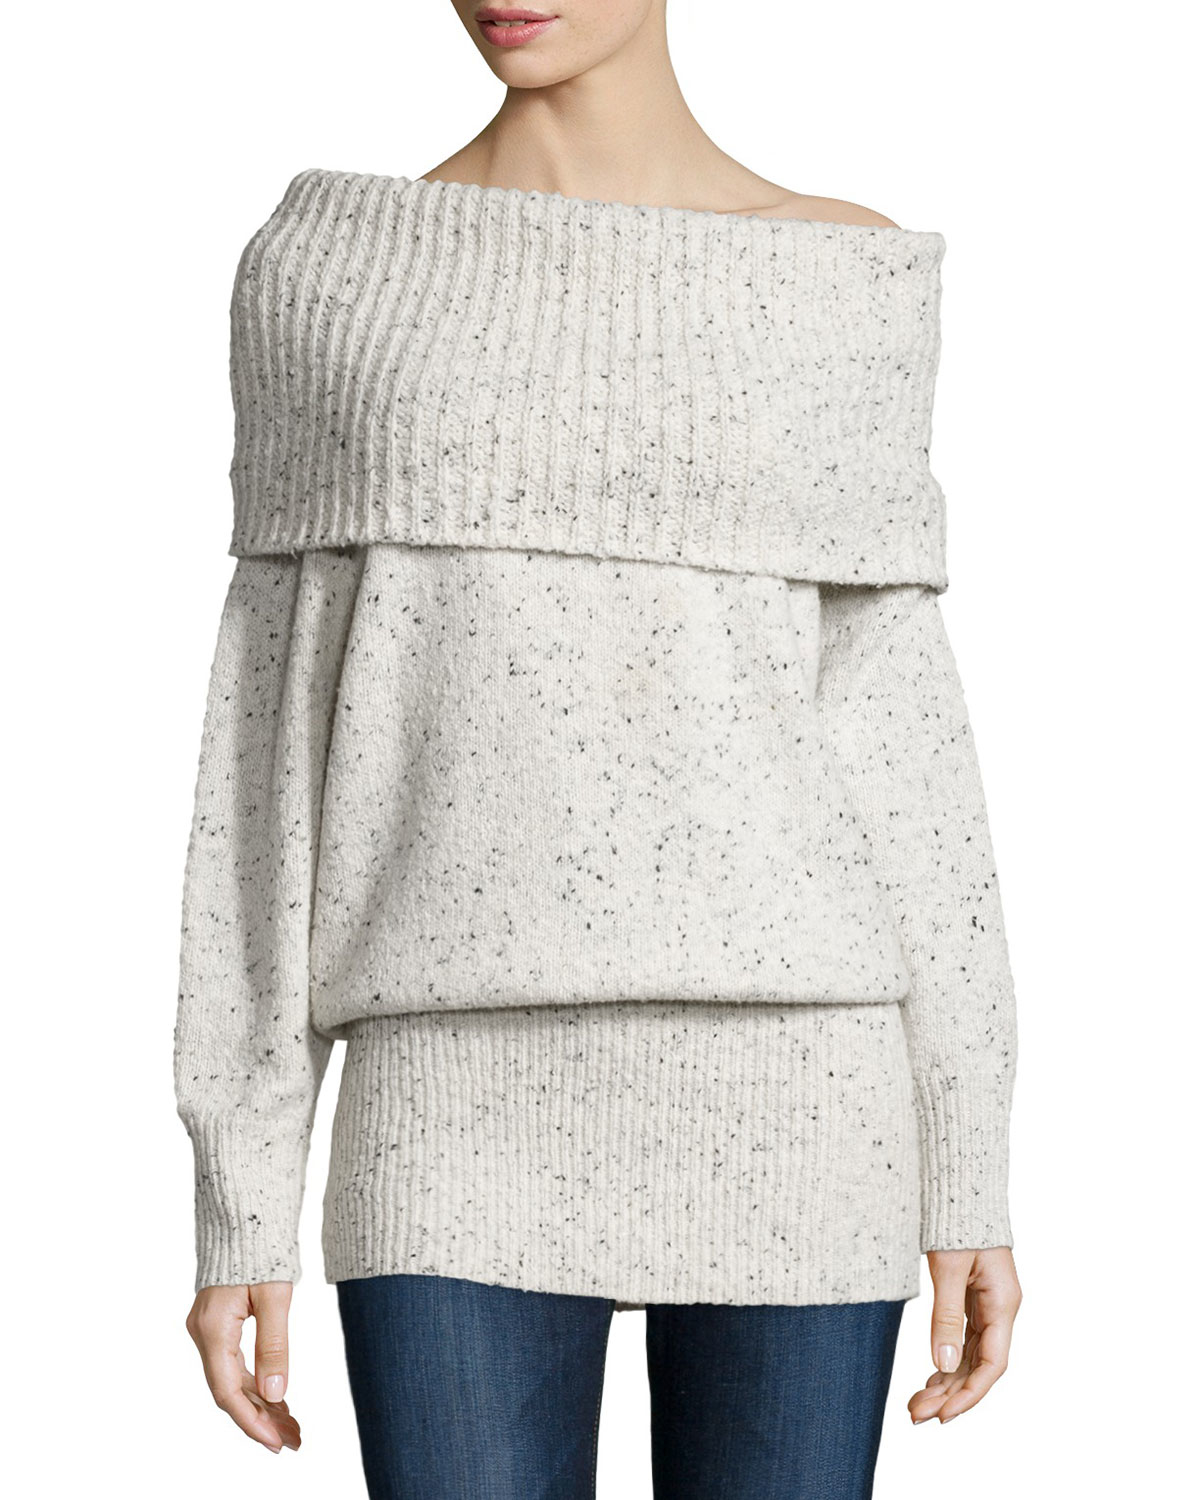 Joie Femie Oversized Cowl-neck Tunic Sweater | Lyst